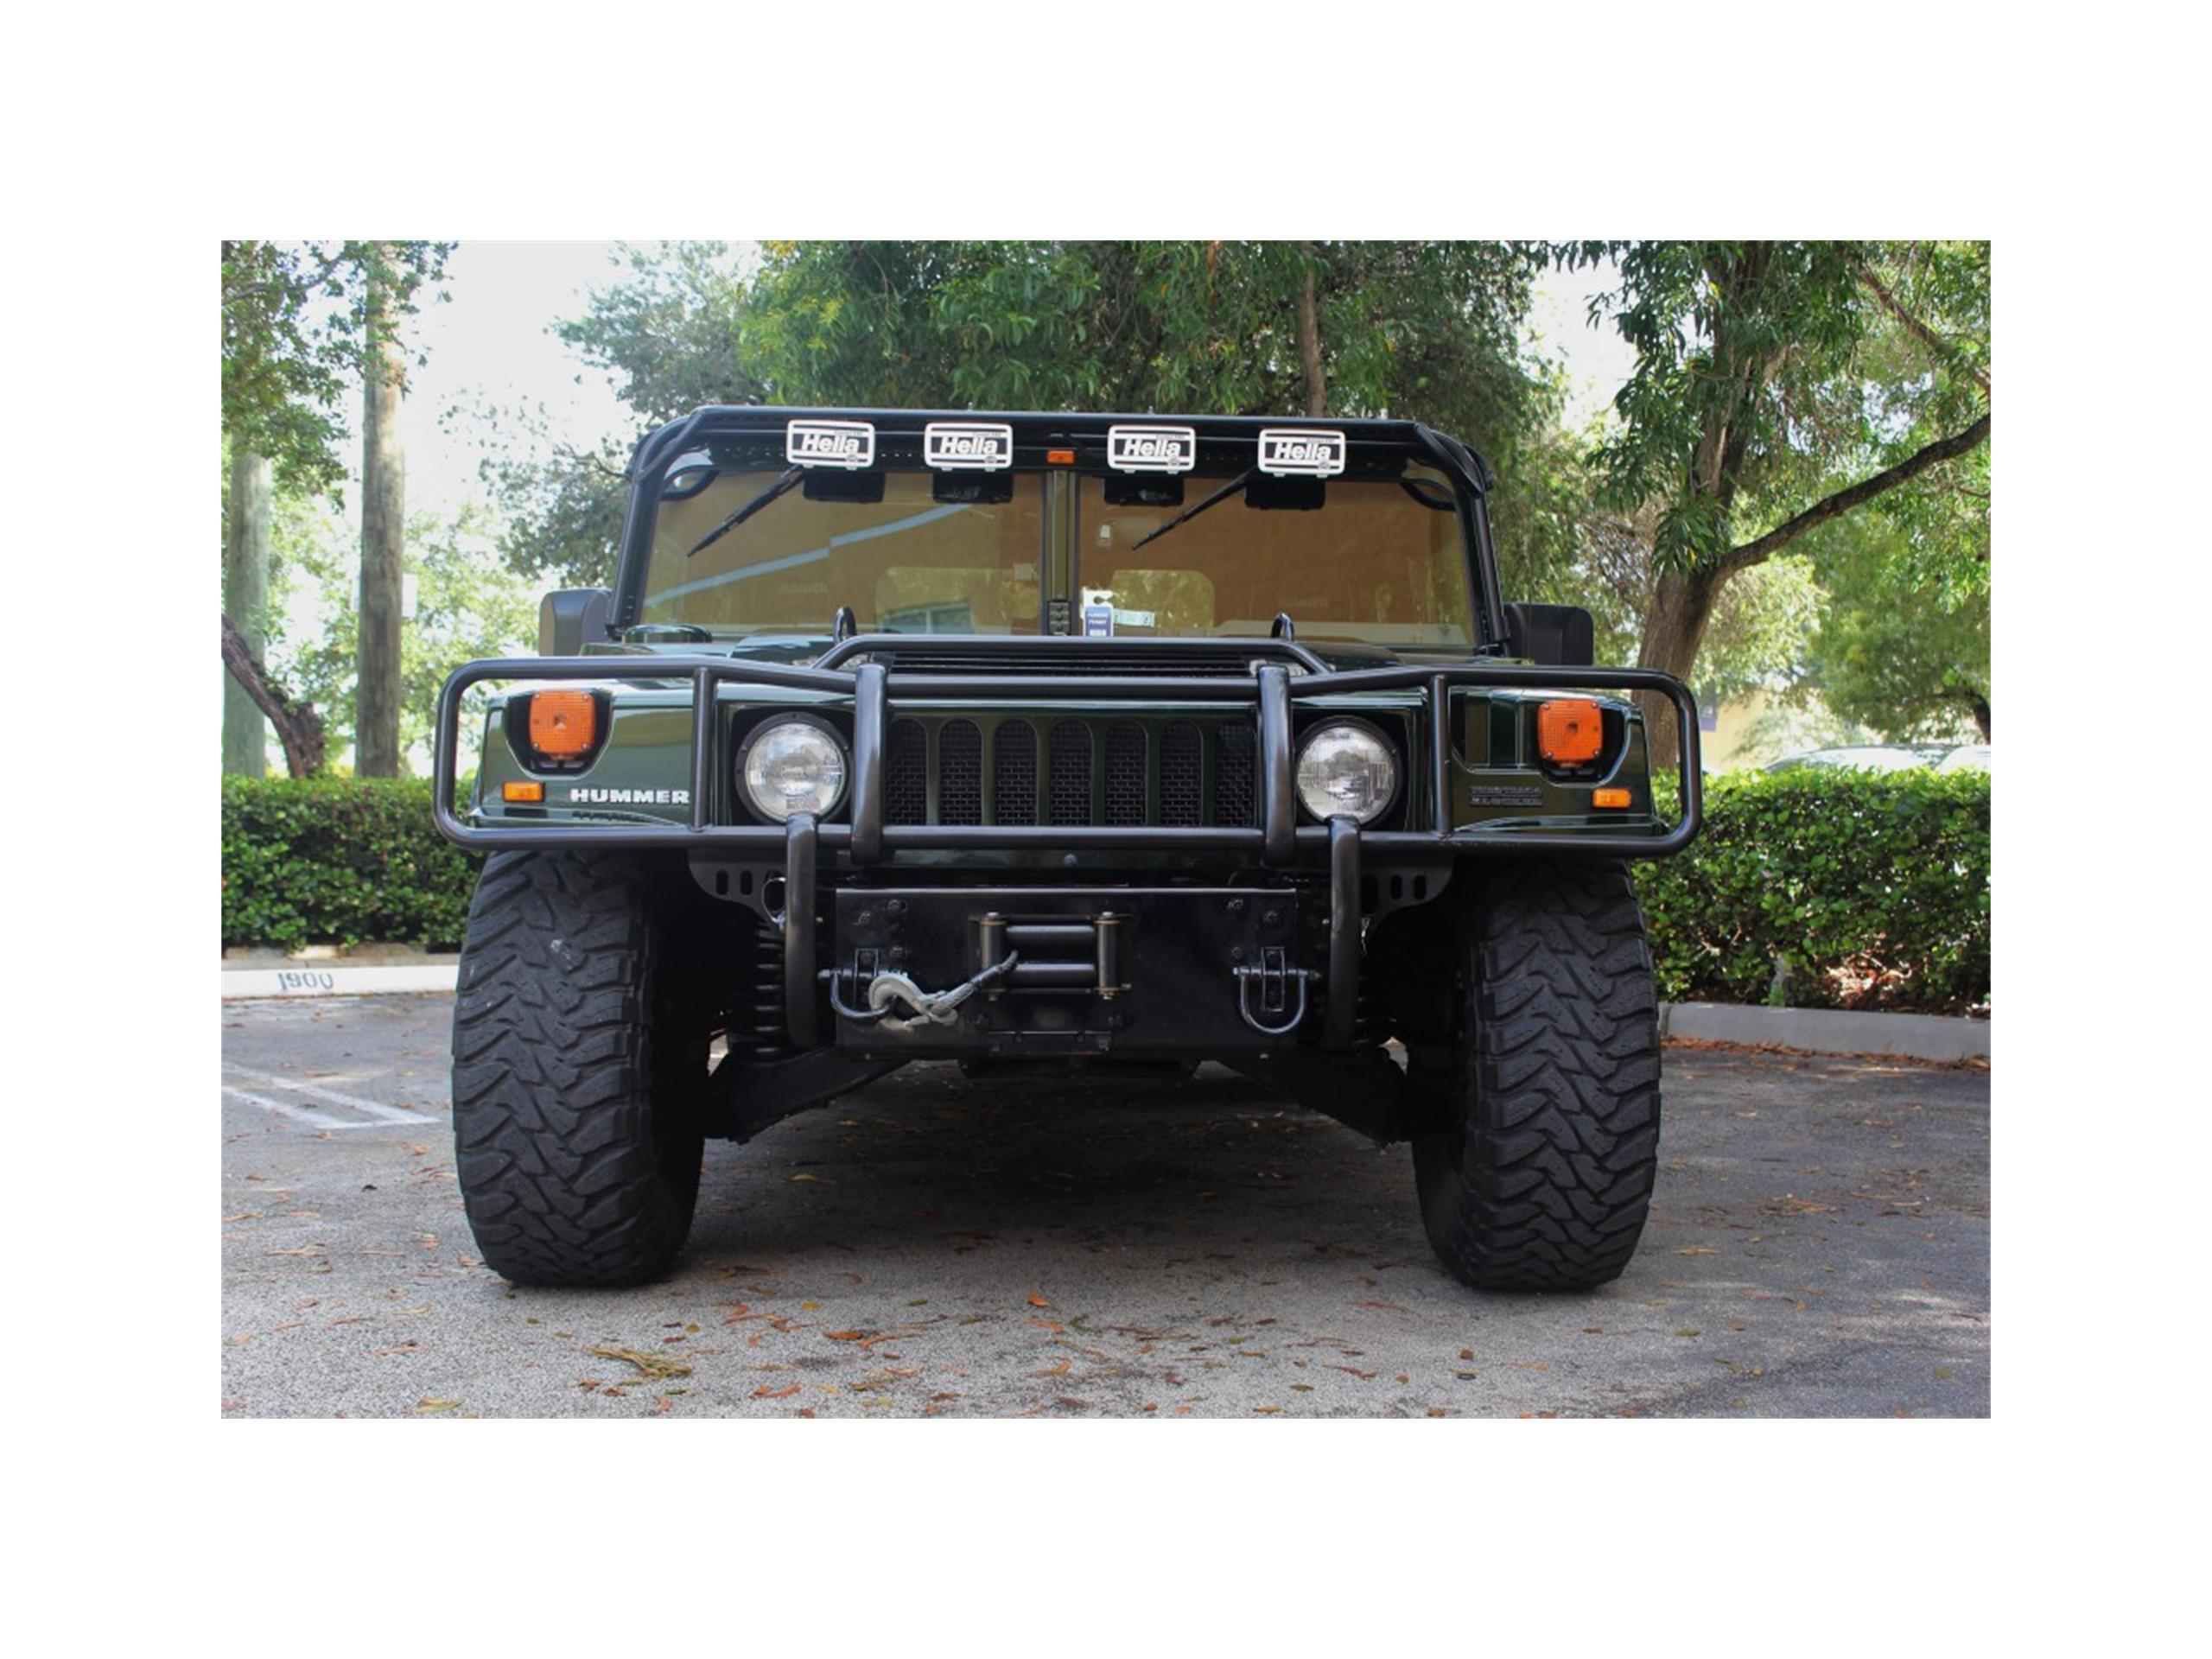 2000 Hummer H1 Service Manual Good Owner Guide Website \u2022 2007 Hummer  H3 Wiring-Diagram 2001 Hummer H1 Parts Diagram